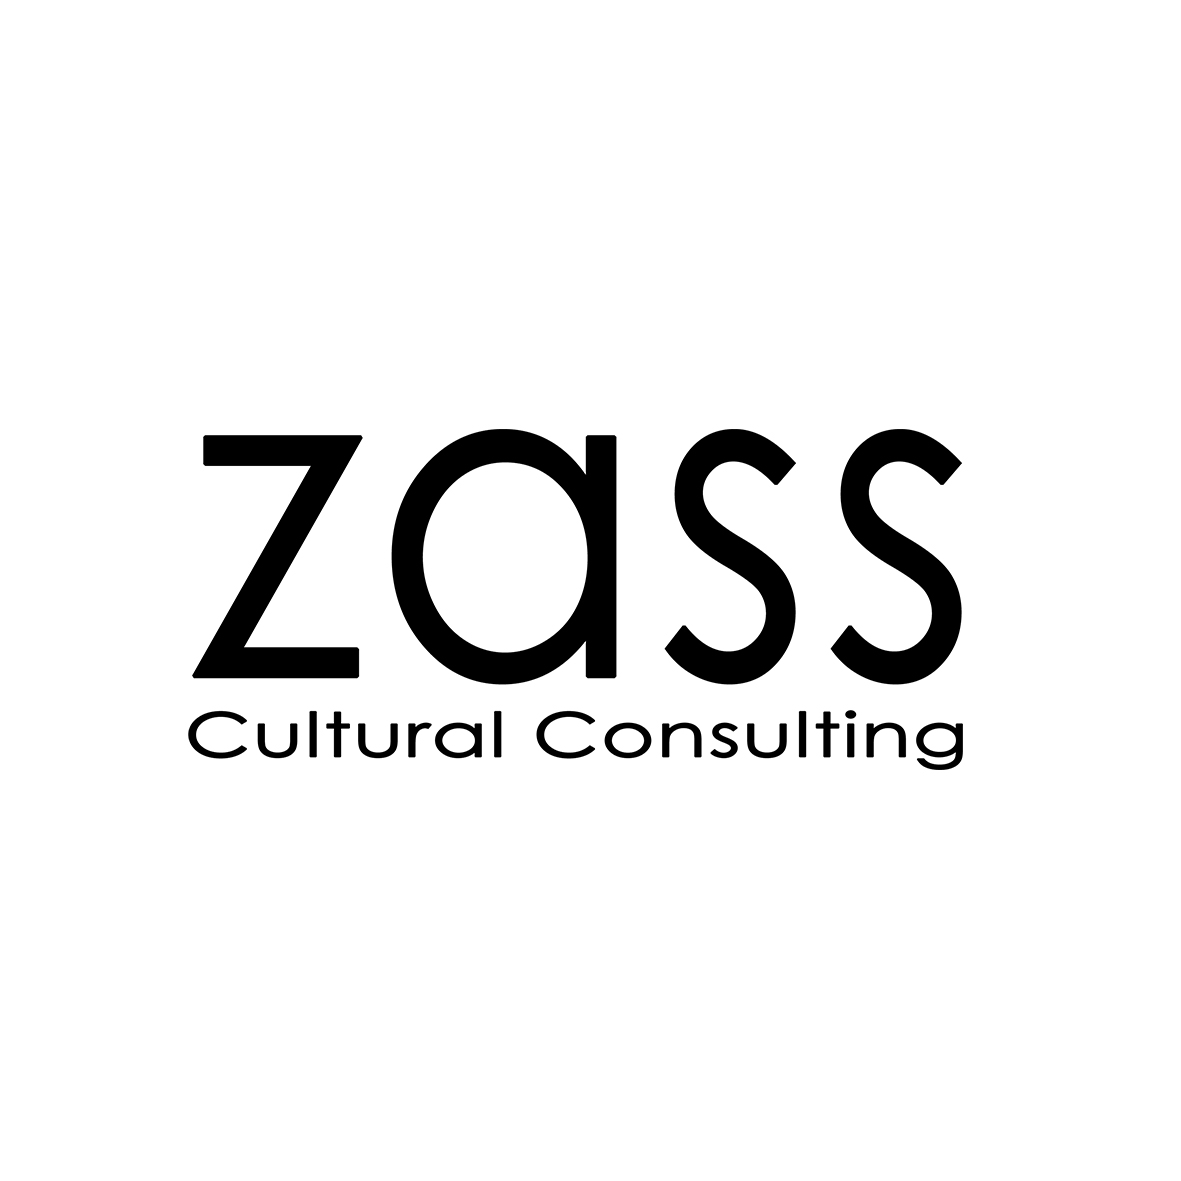 Zass Cultural Consulting